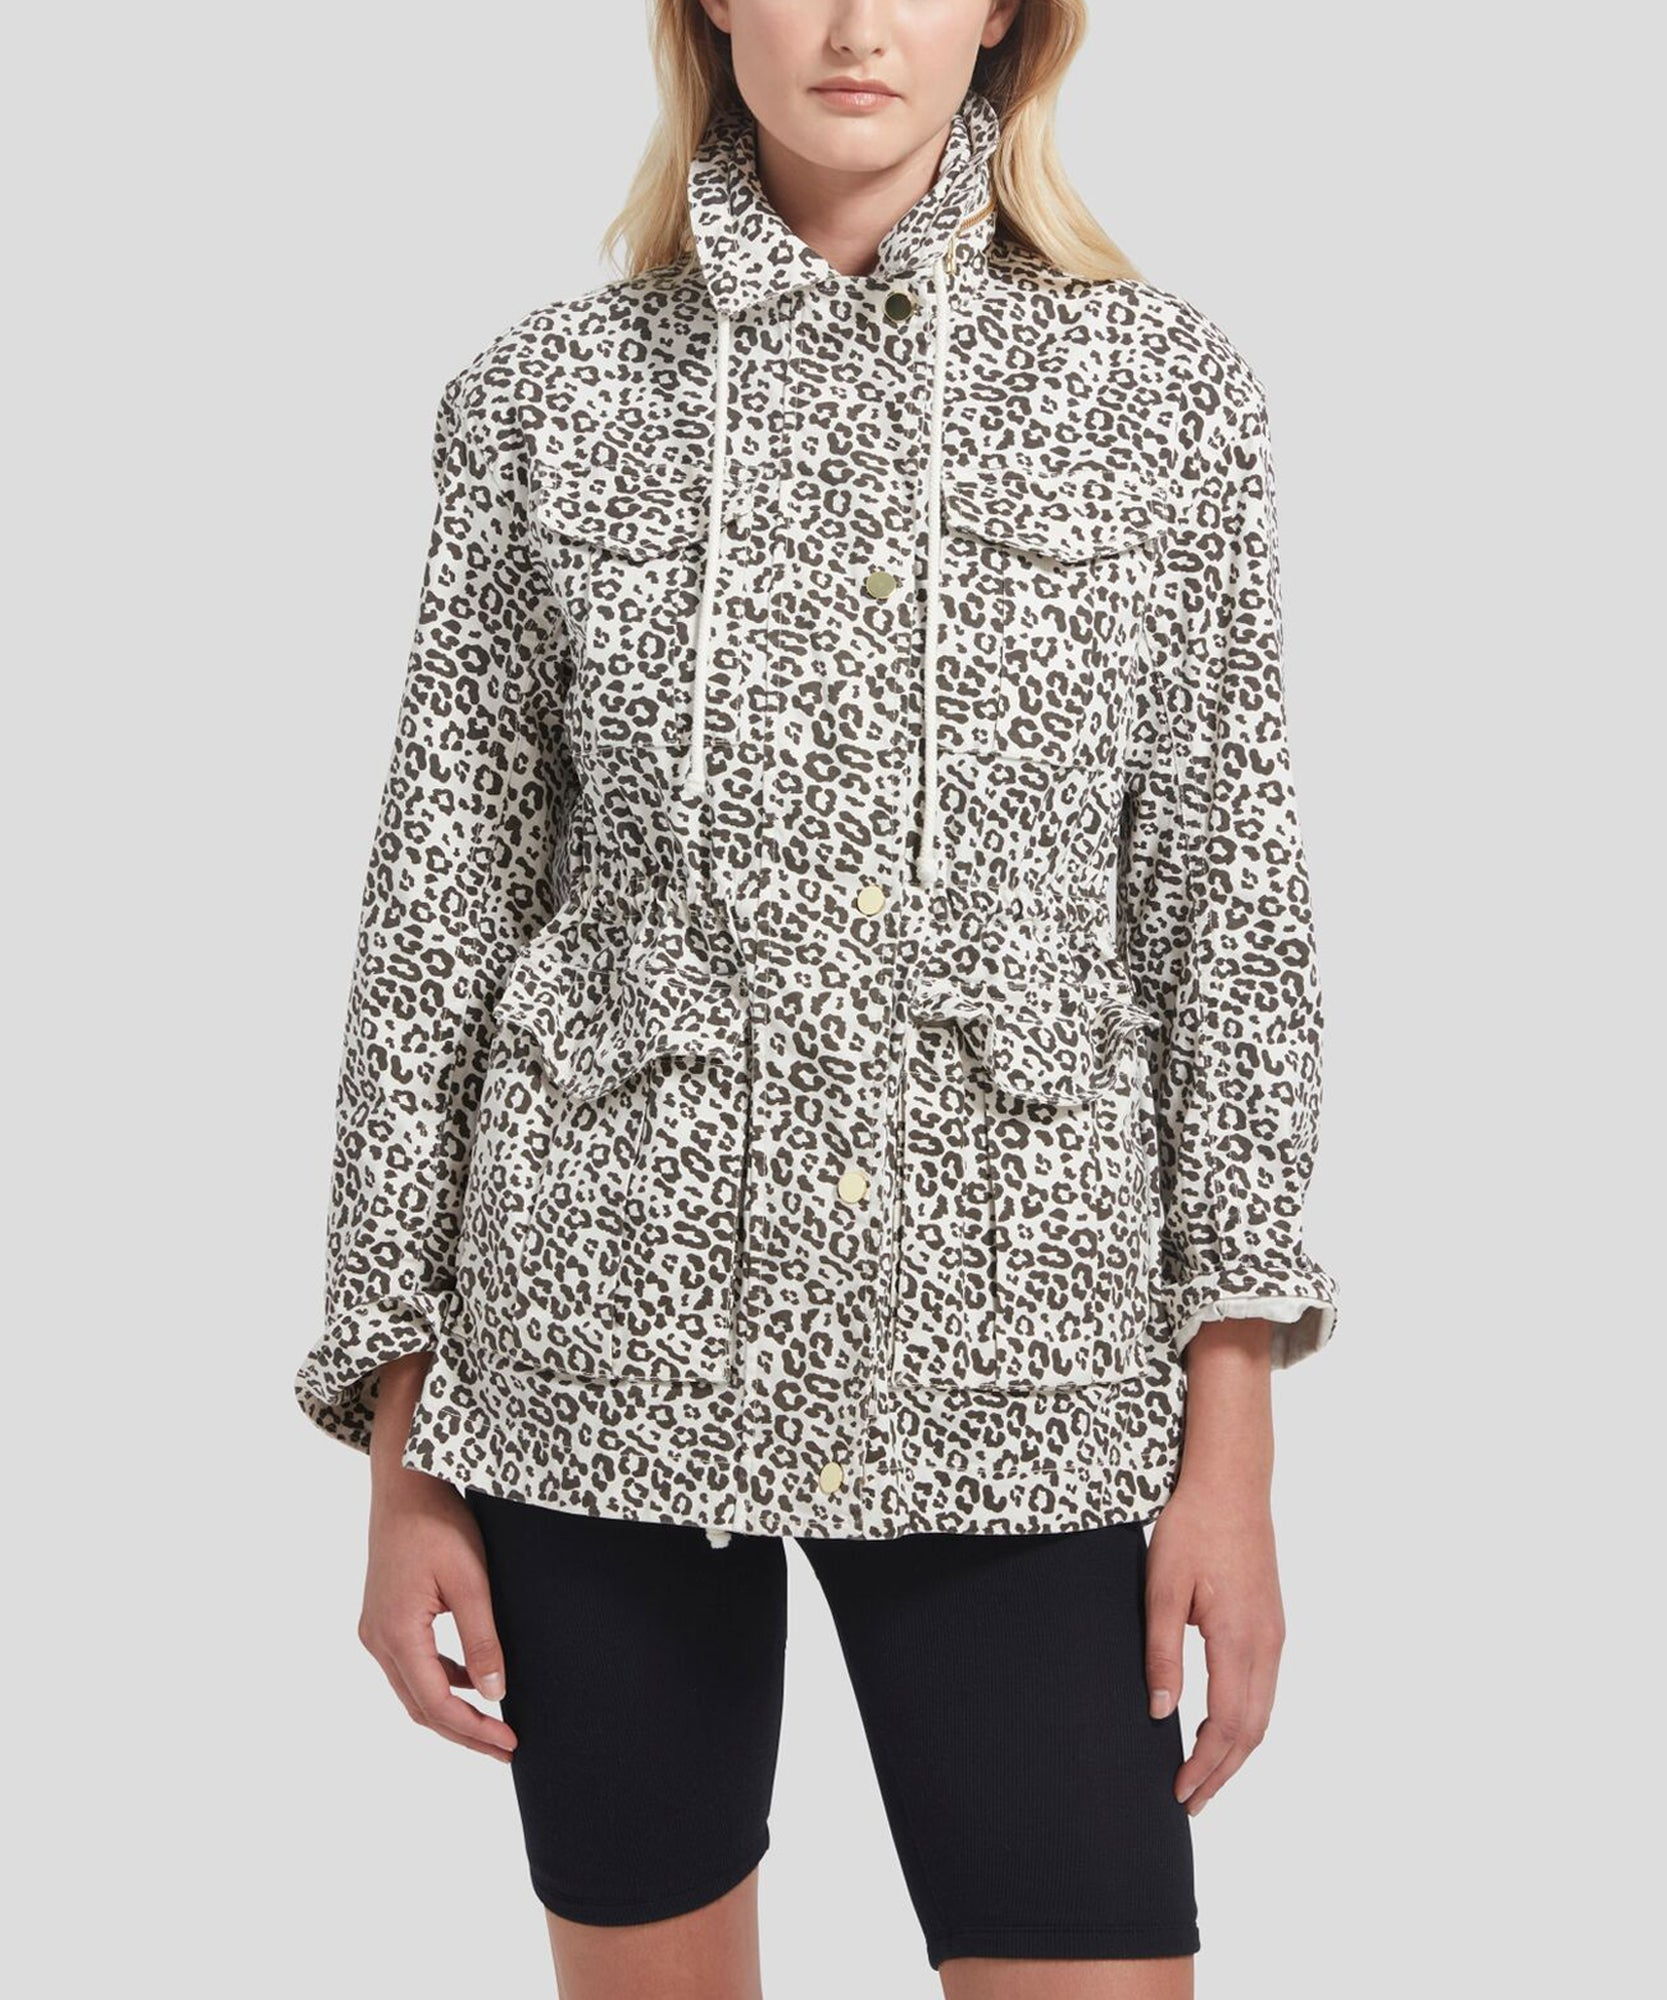 Lunar Leopard Field Jacket - Women's Luxe Jacket by ATM Anthony Thomas Melillo